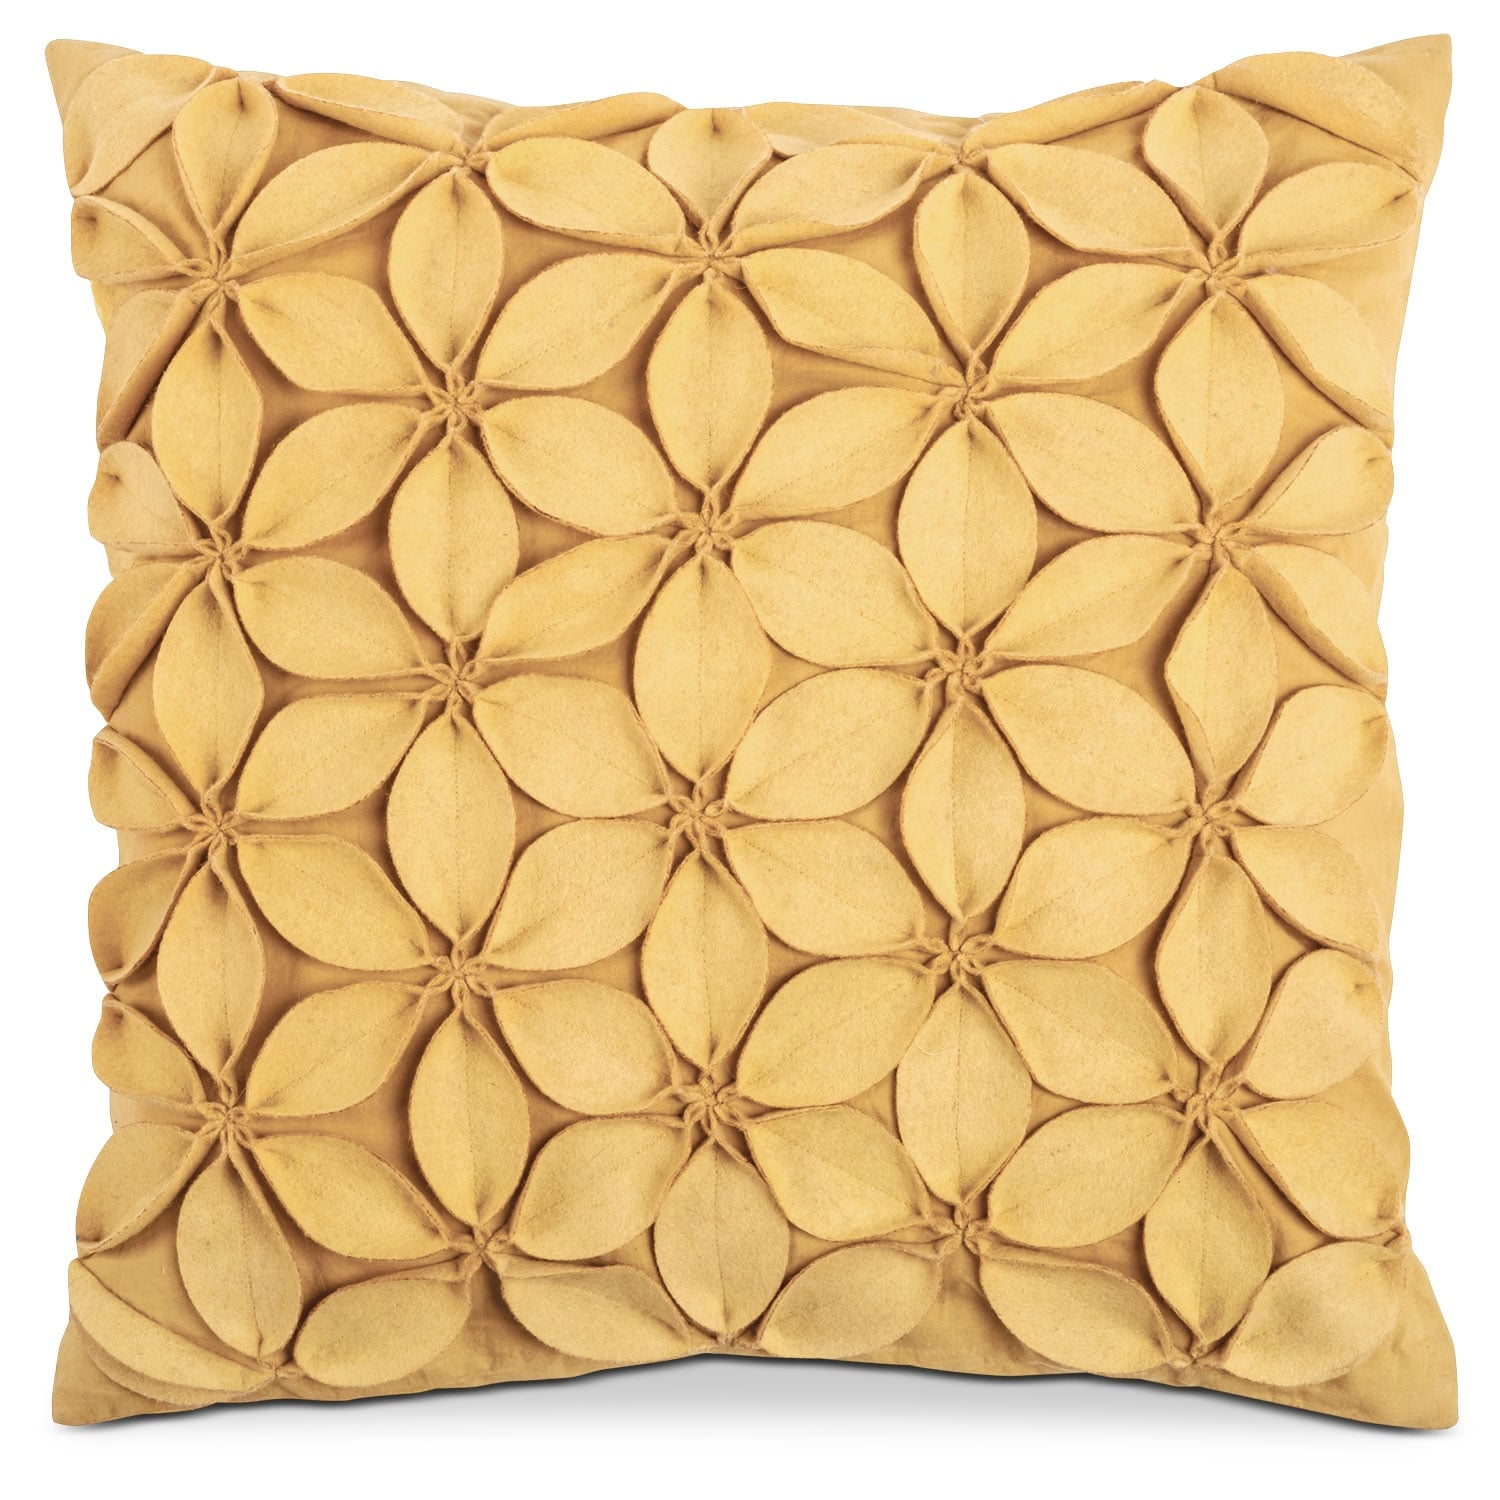 Daffodil Decorative Pillow